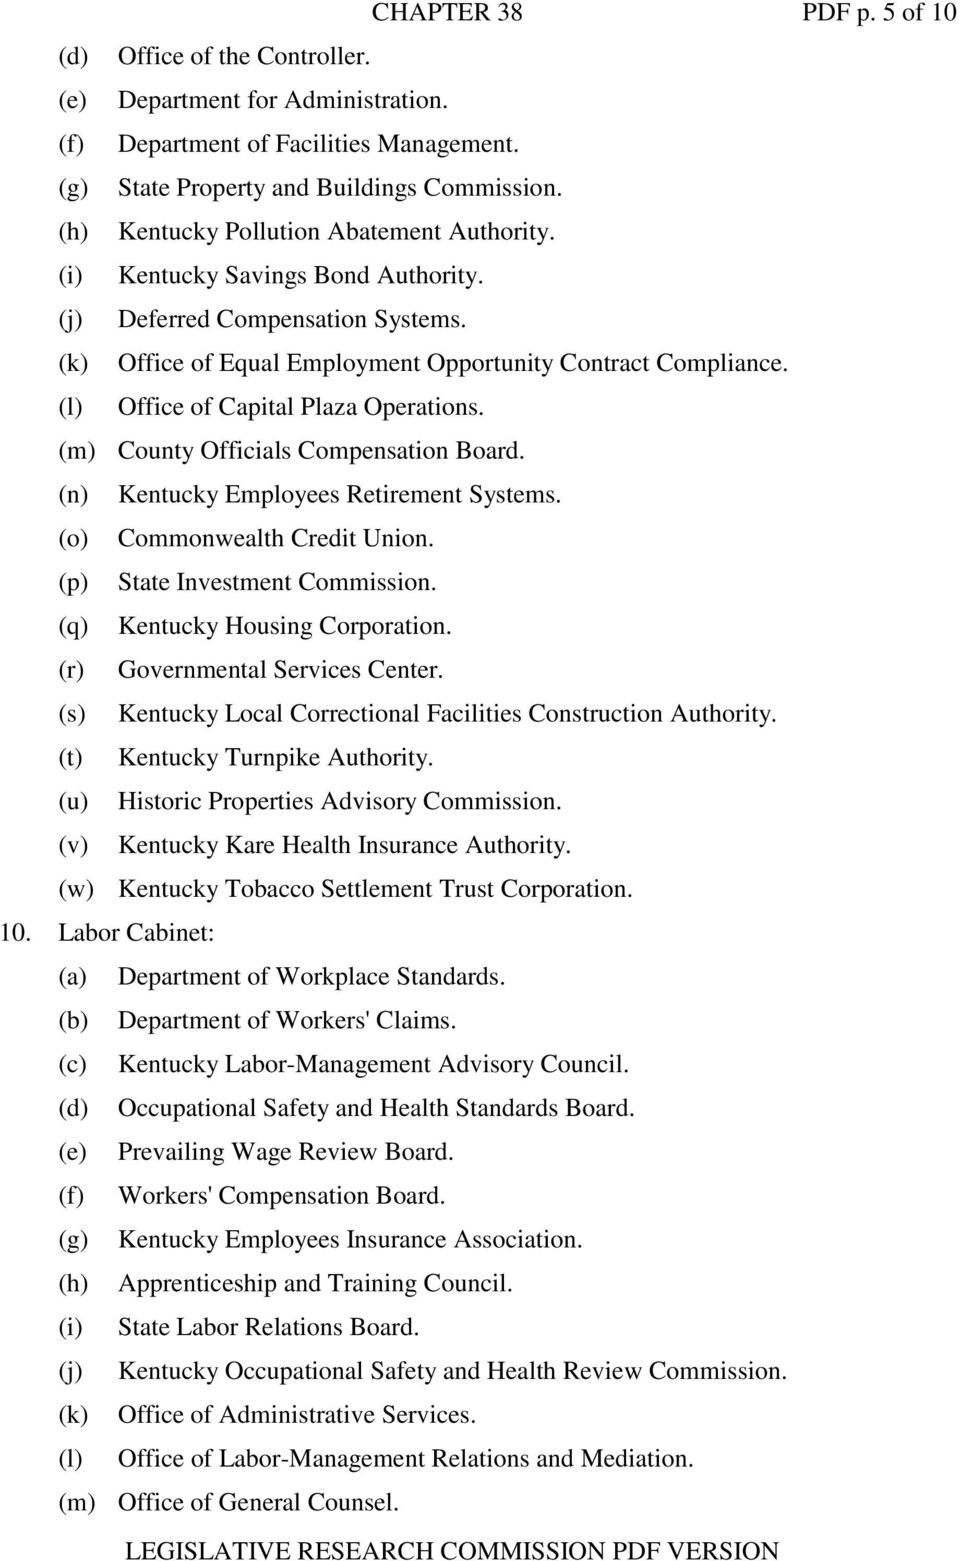 (l) Office of Capital Plaza Operations. (m) County Officials Compensation Board. (n) Kentucky Employees Retirement Systems. (o) Commonwealth Credit Union. (p) State Investment Commission.